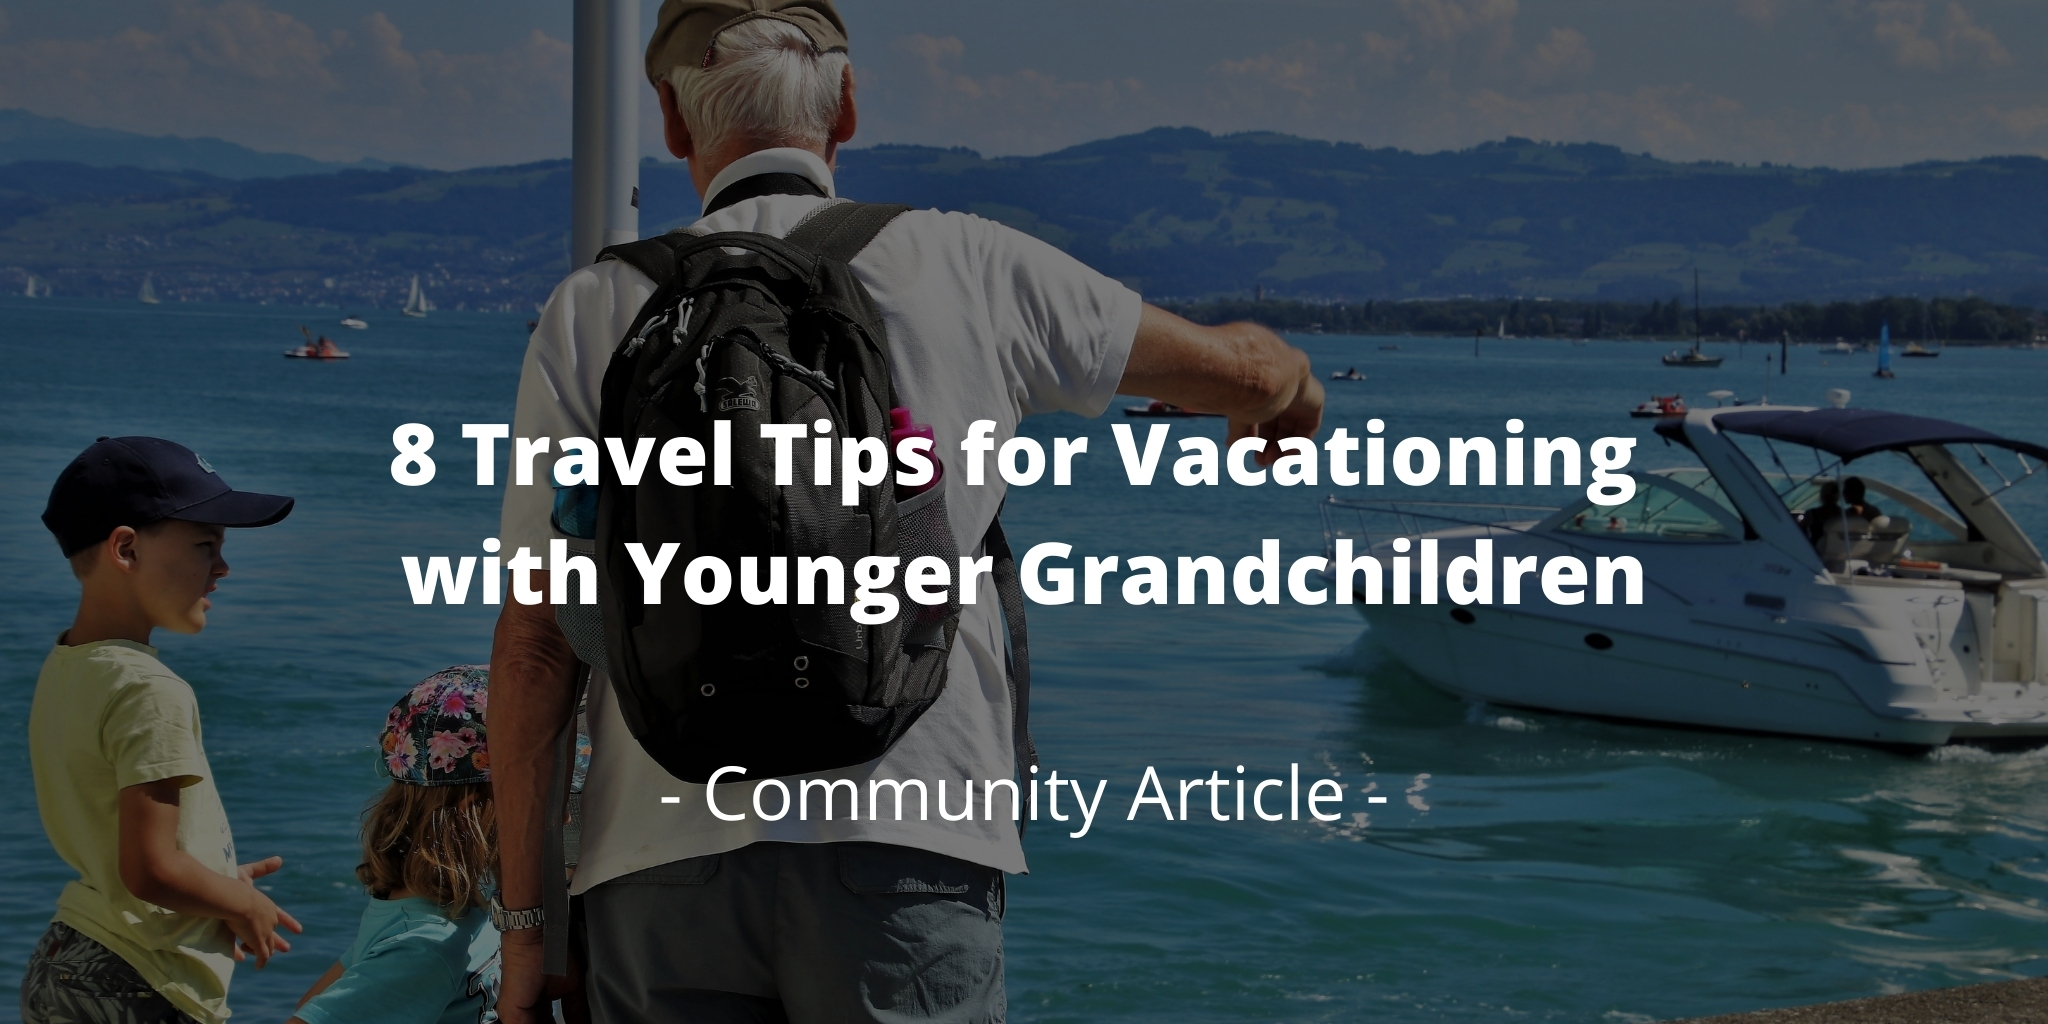 8 Travel Tips for Vacationing with Younger Grandchildren